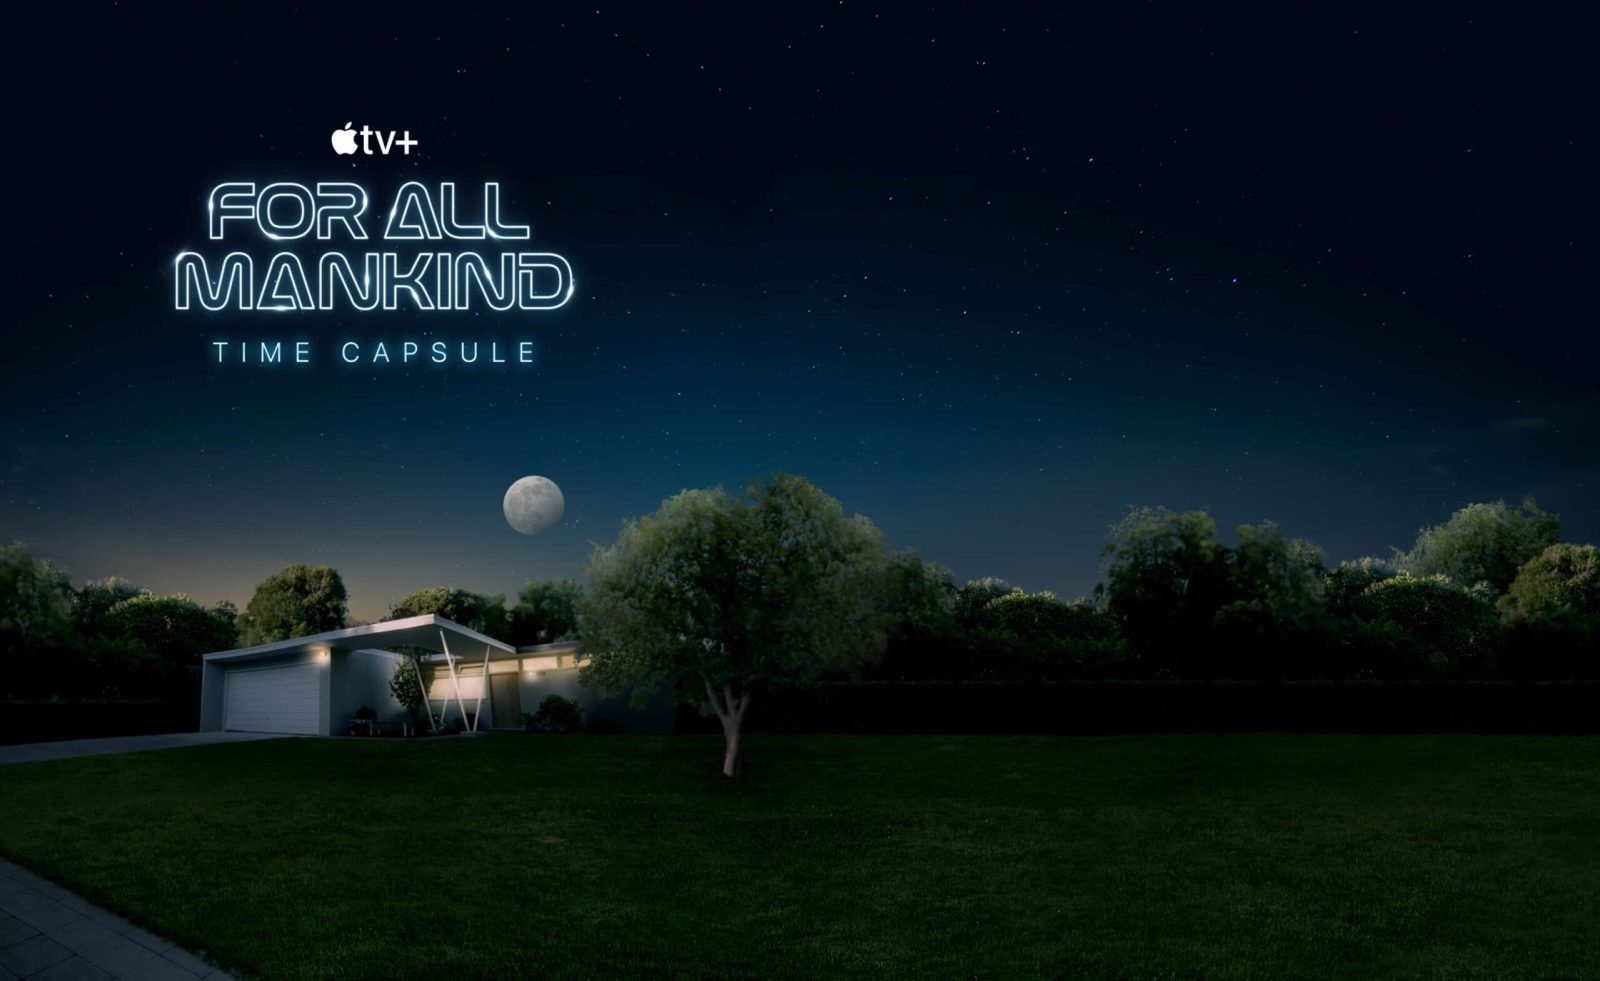 Apple TV+ Brings Augmented Reality to 'For All Mankind: Time Capsule' app